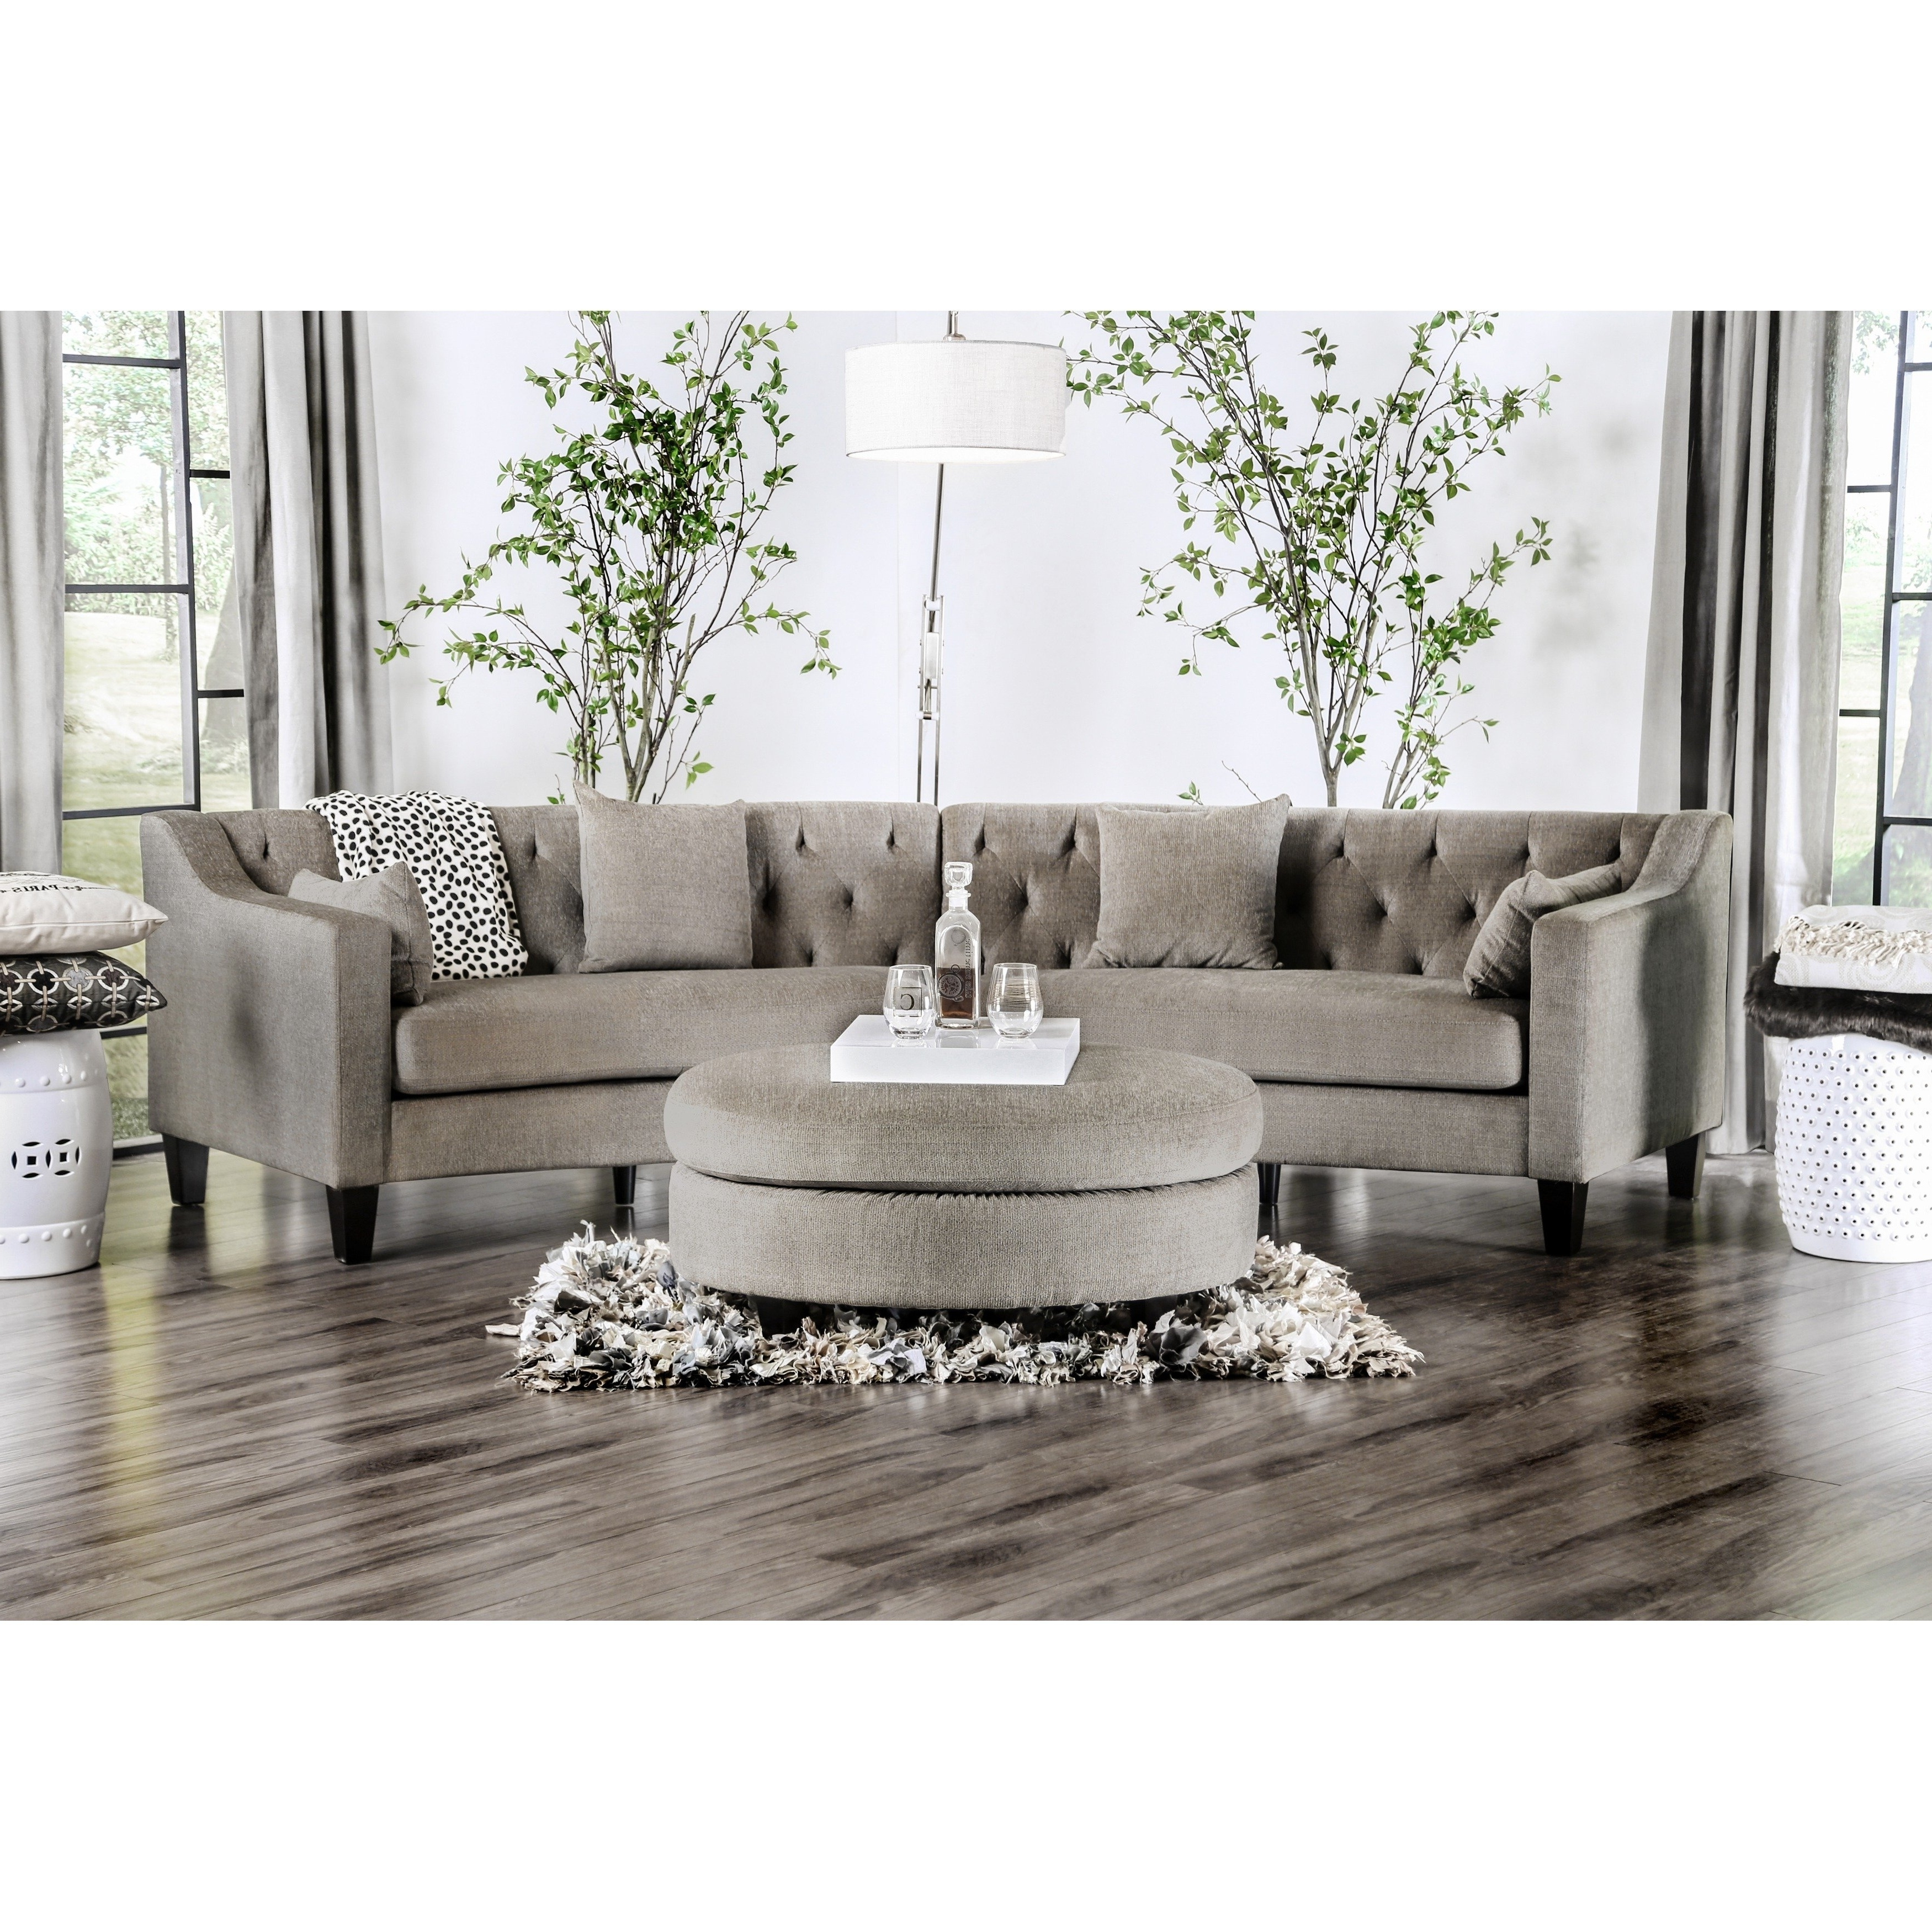 Shop Aretha Contemporary Grey Tufted Rounded Sectional Sofa For Most Popular Contemporary Curves Coffee Tables (View 14 of 20)